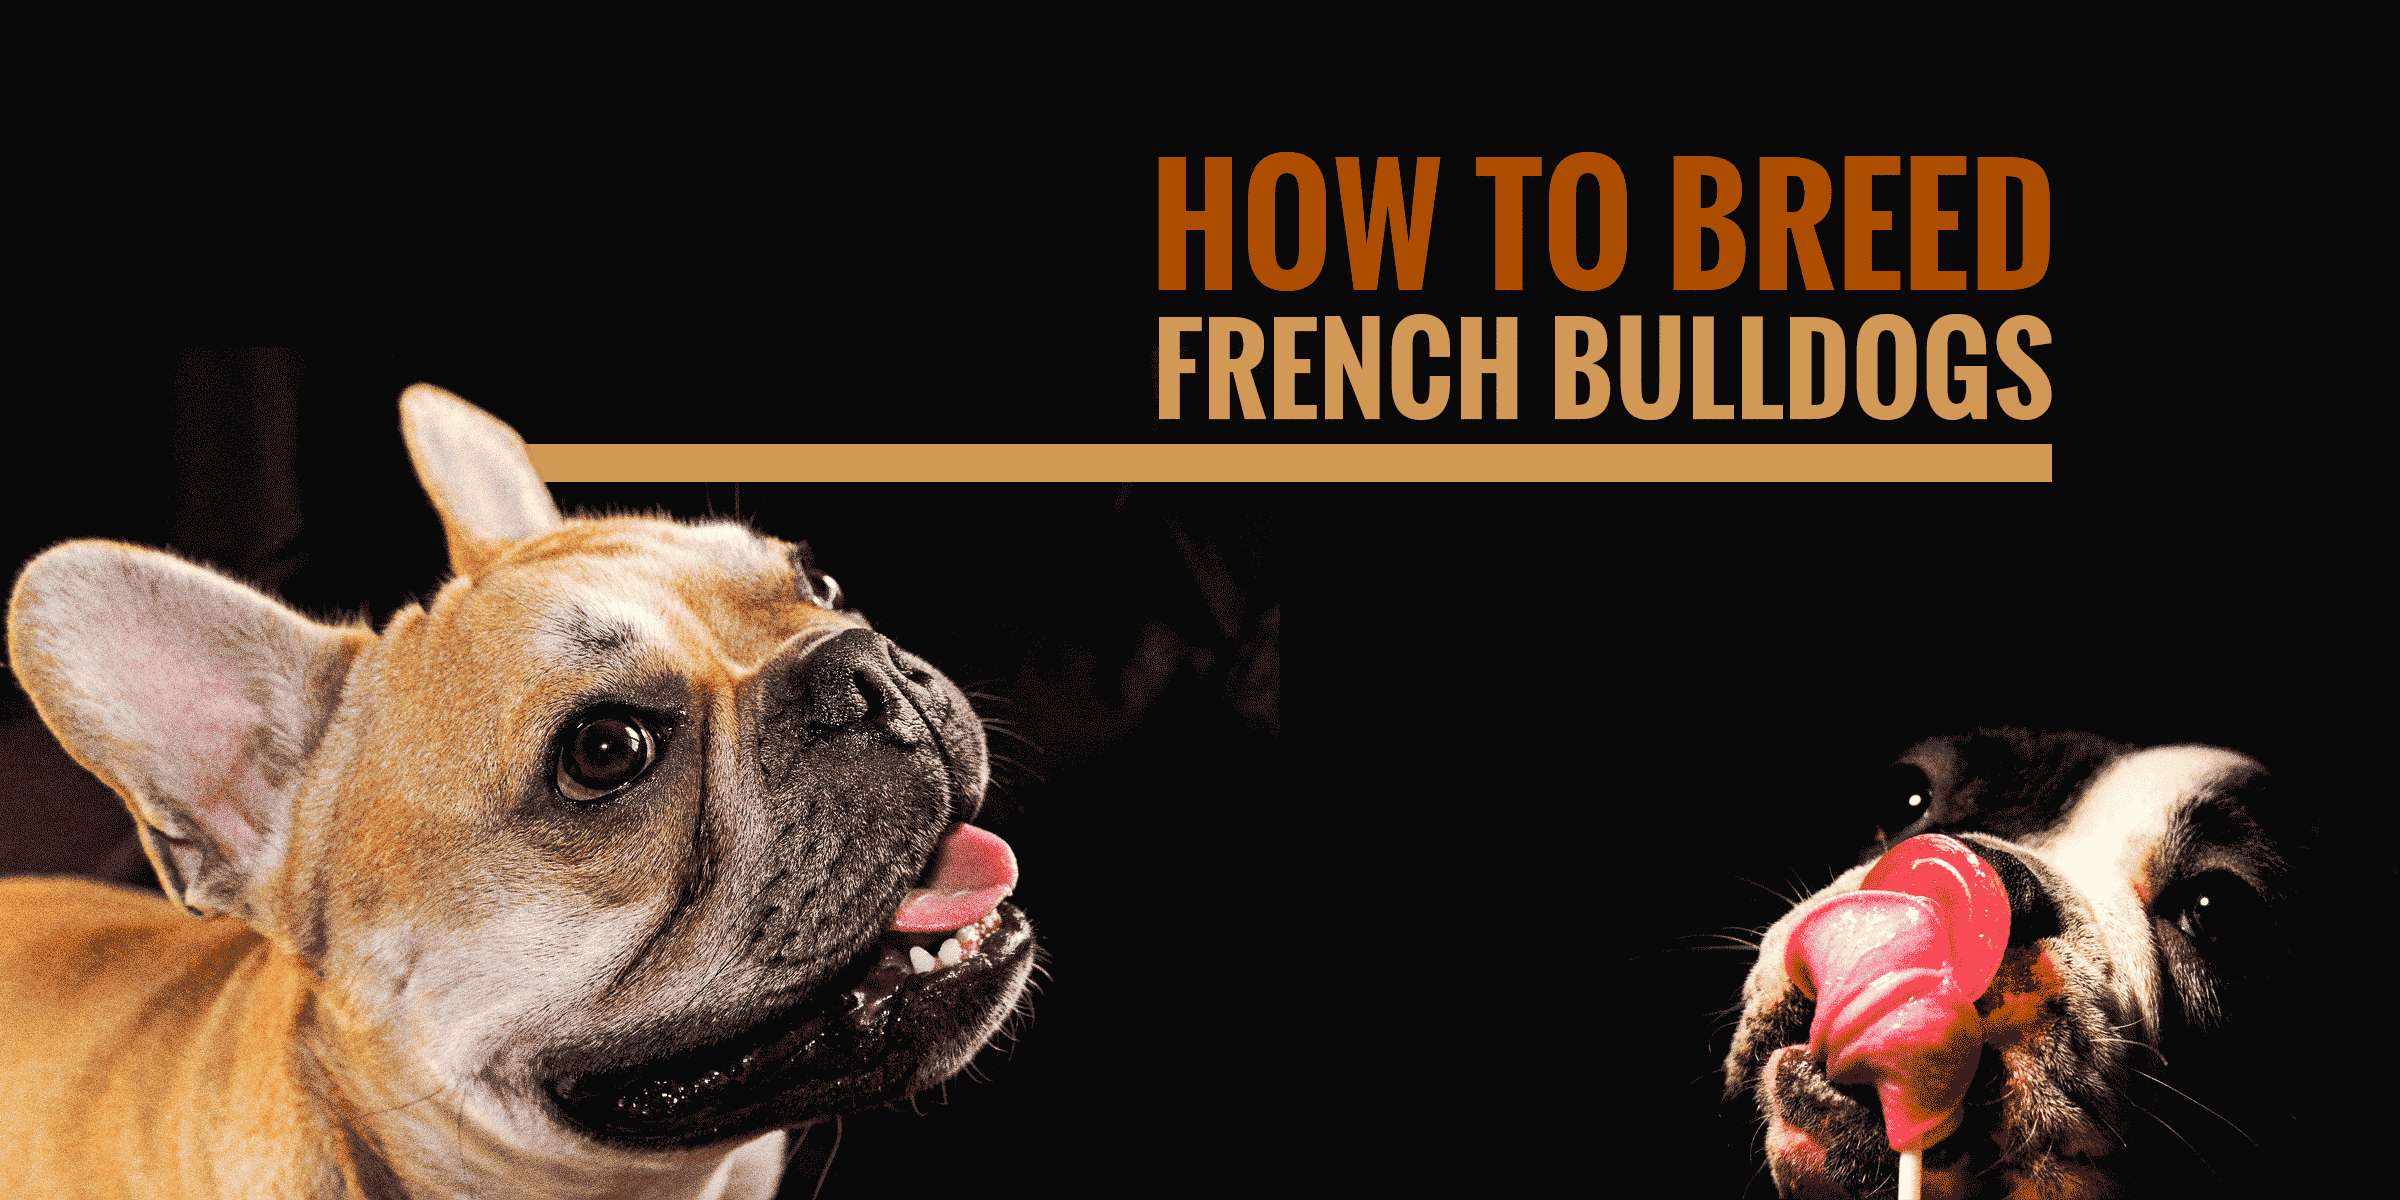 How to Breed French Bulldogs recommendations